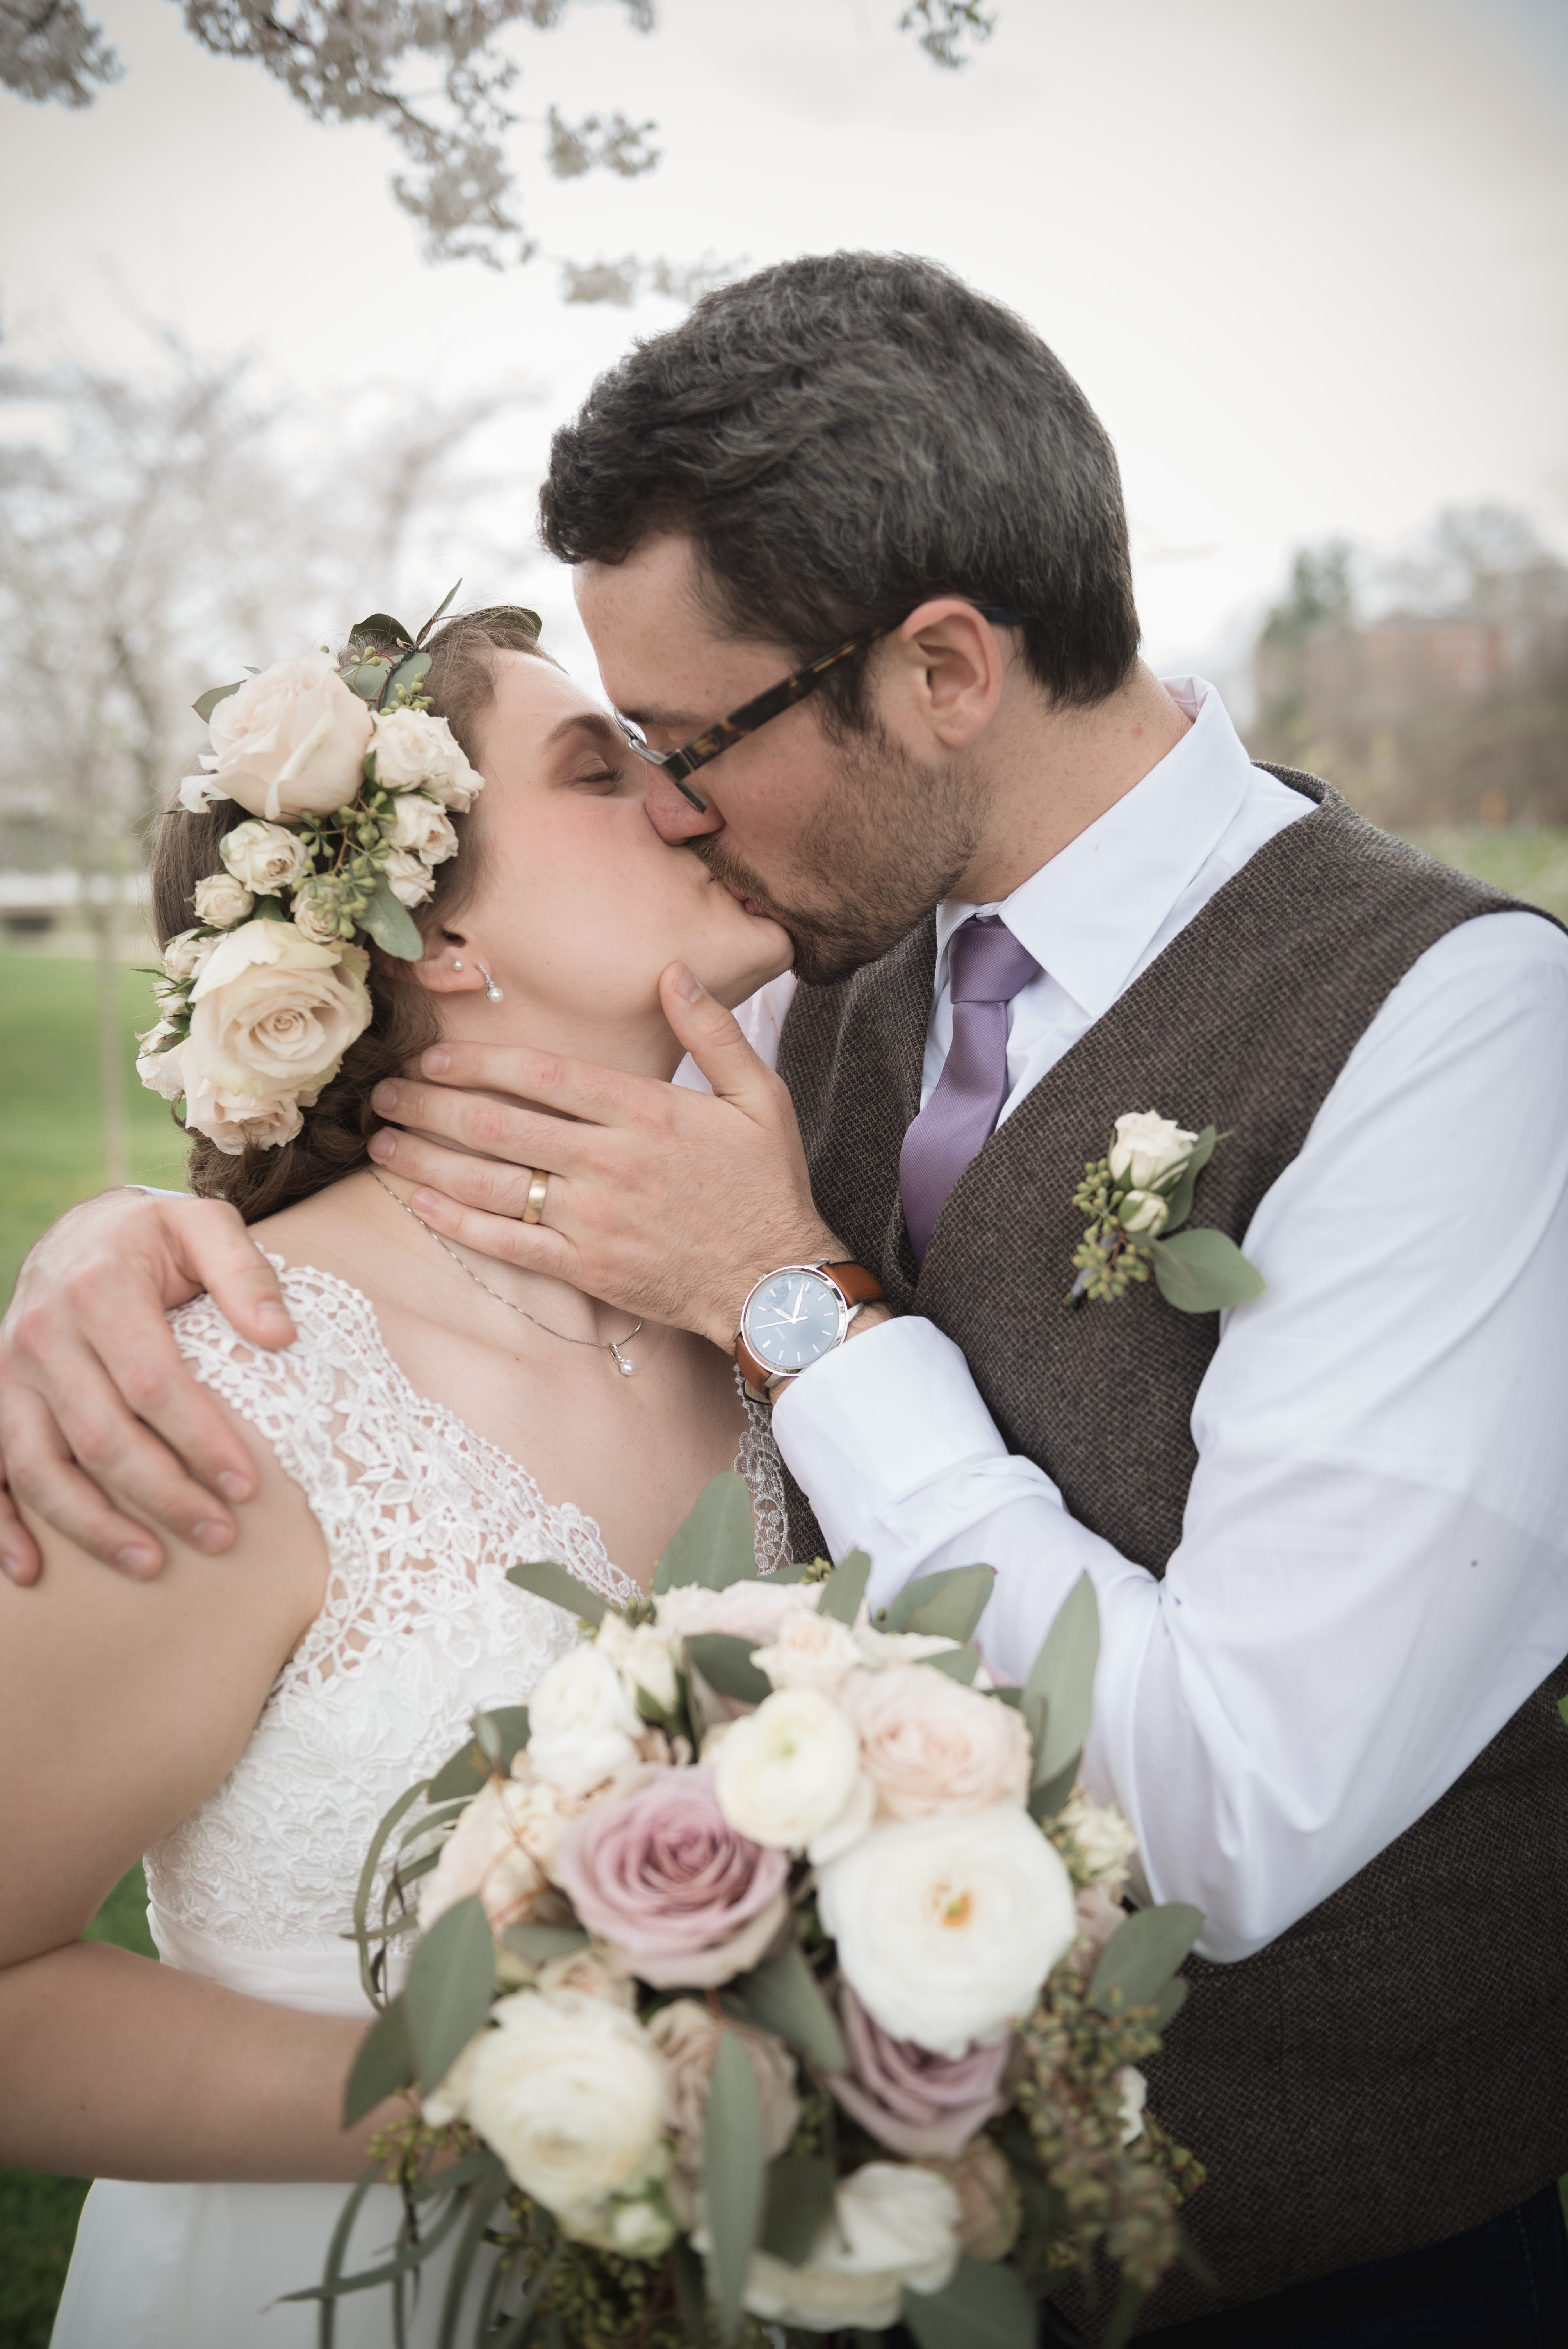 wedding couple photography at cherry blossom trees in Athens Ohio